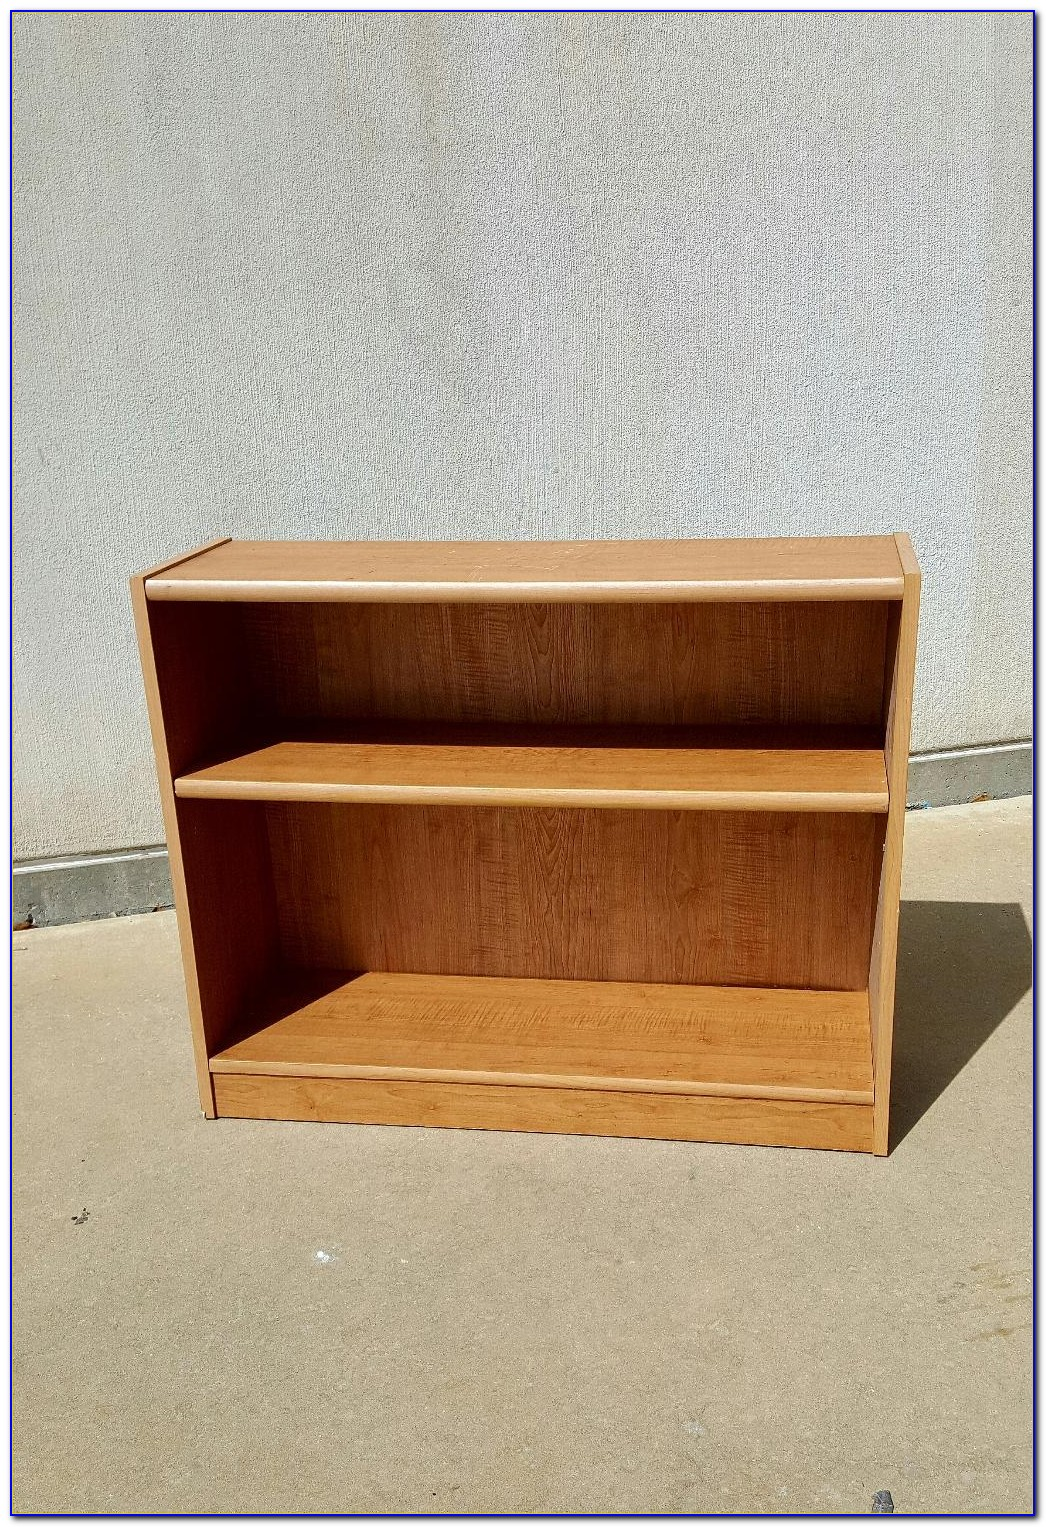 30 Inch High Bookshelves